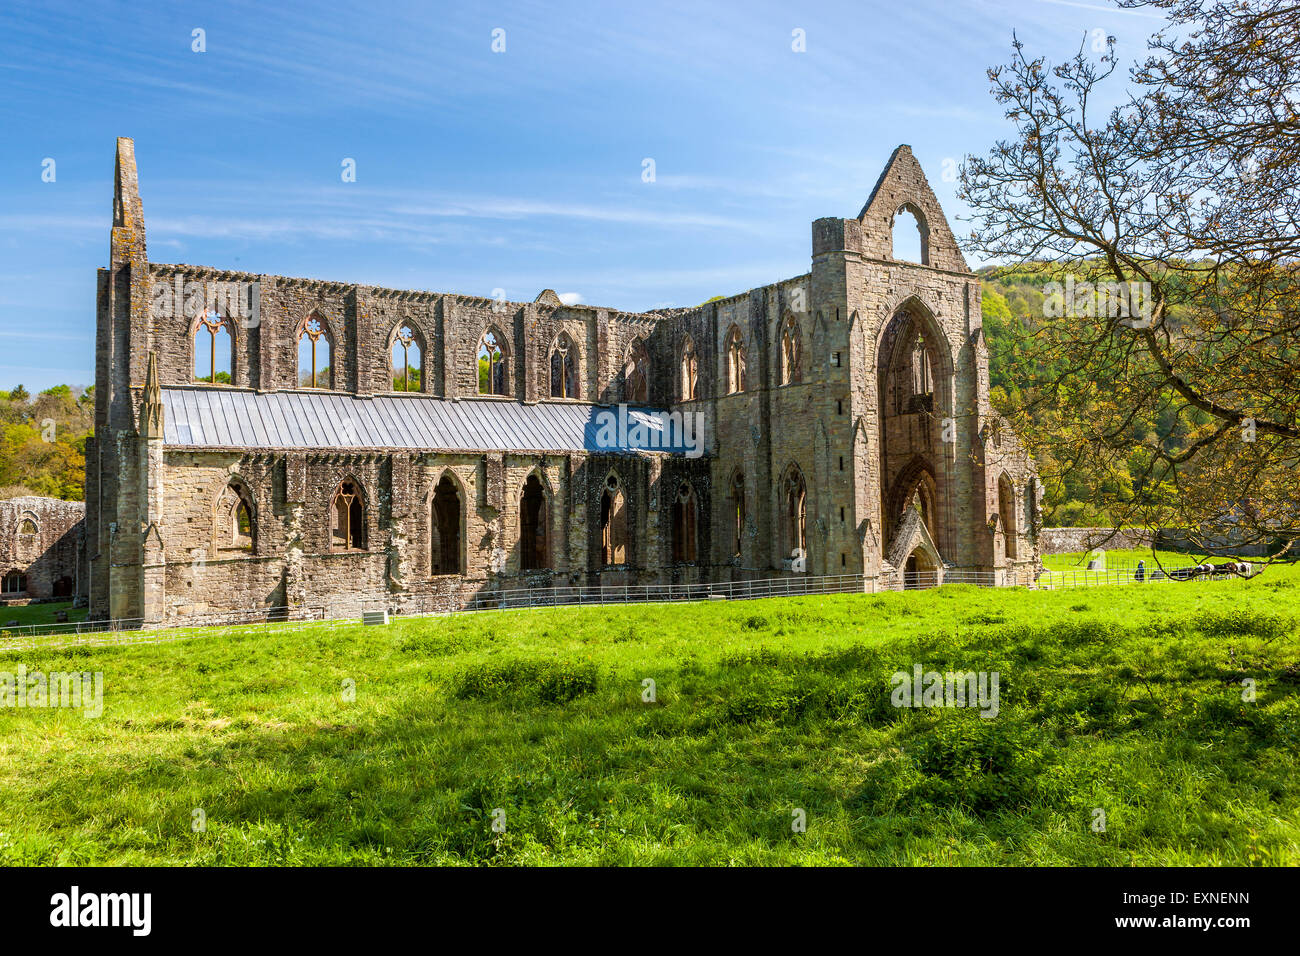 The ruins of Tintern Abbey a medieval Cistercian monastery, Monmouthshire, Wales, United Kingdom, Europe. - Stock Image